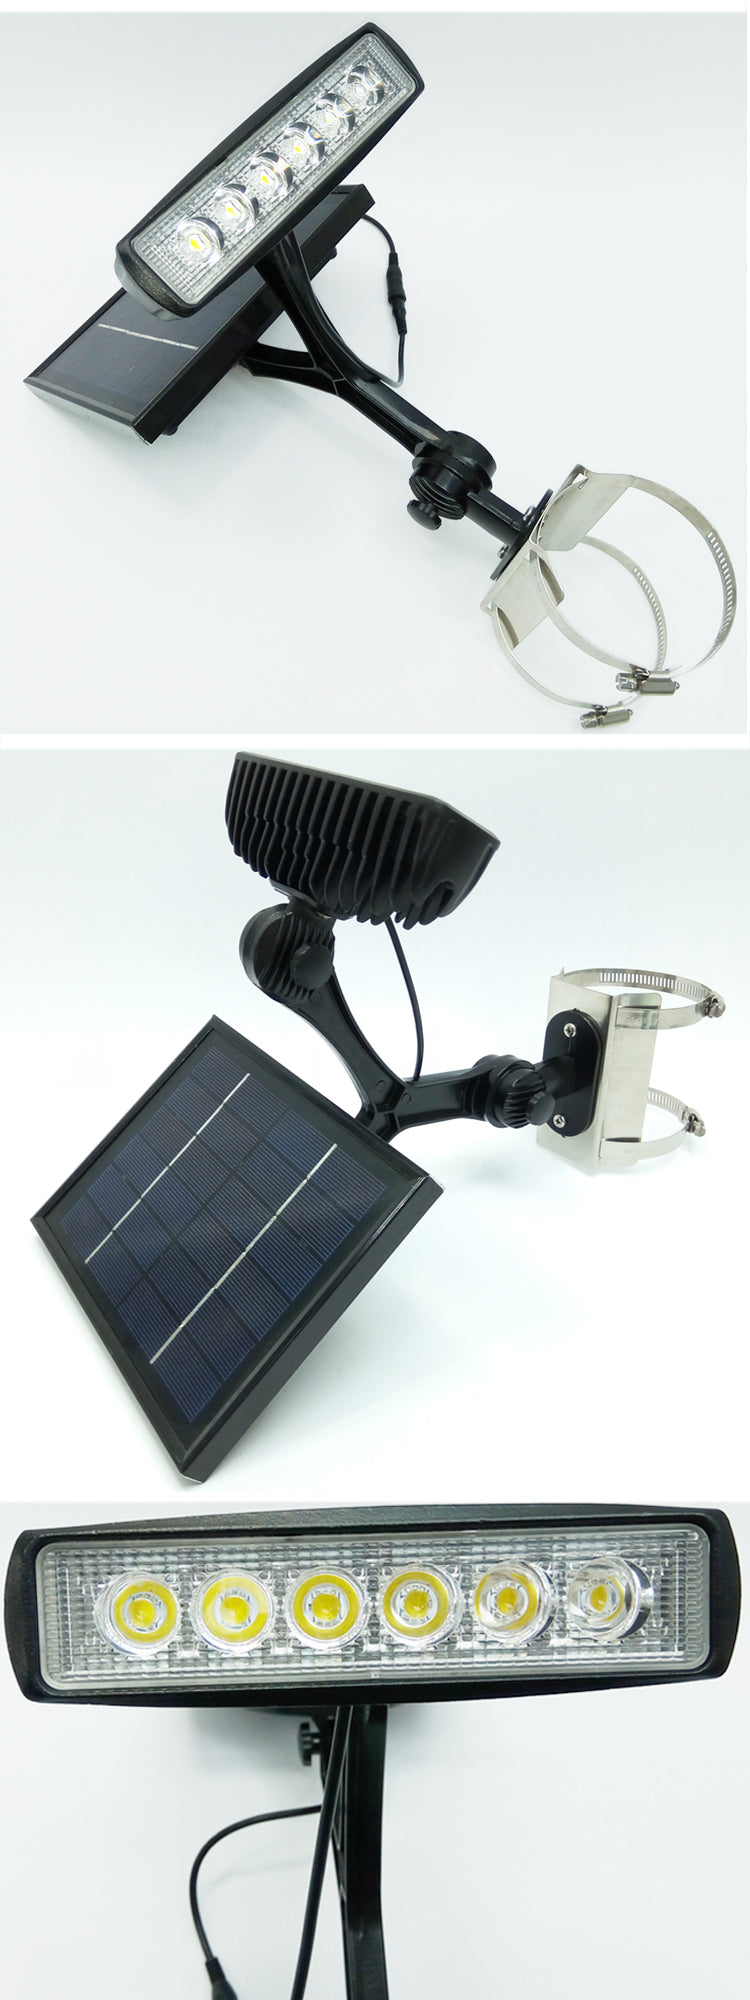 Wide angle commercial solar flagpole light W/660 lumen